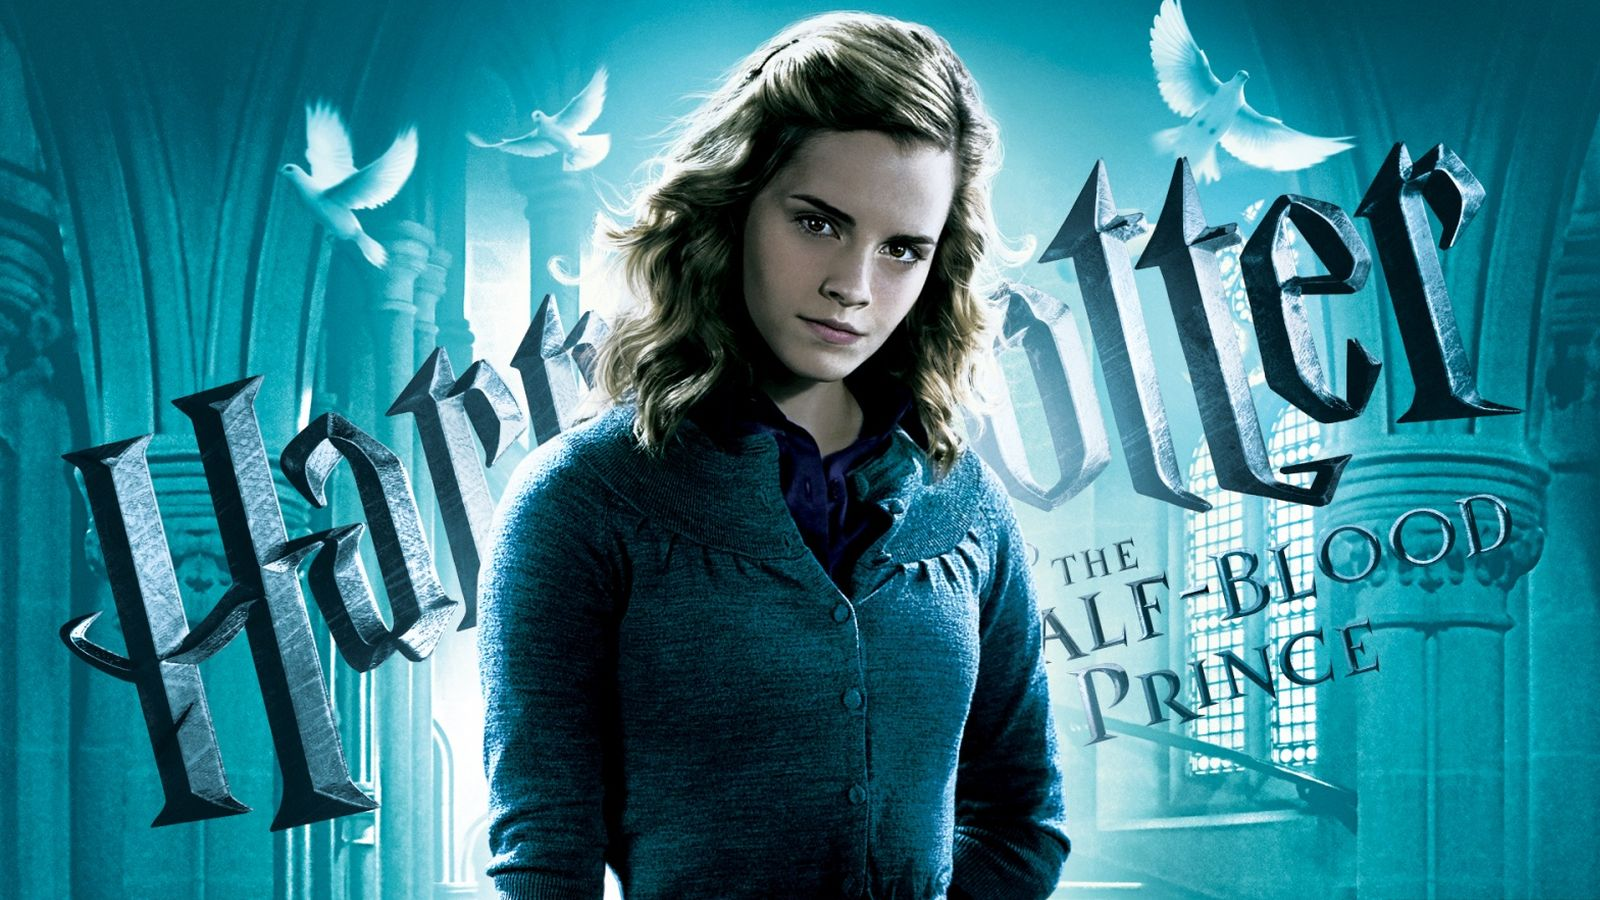 harry_potter__half_blood_prince_7-wallpaper-1600x900.jpg